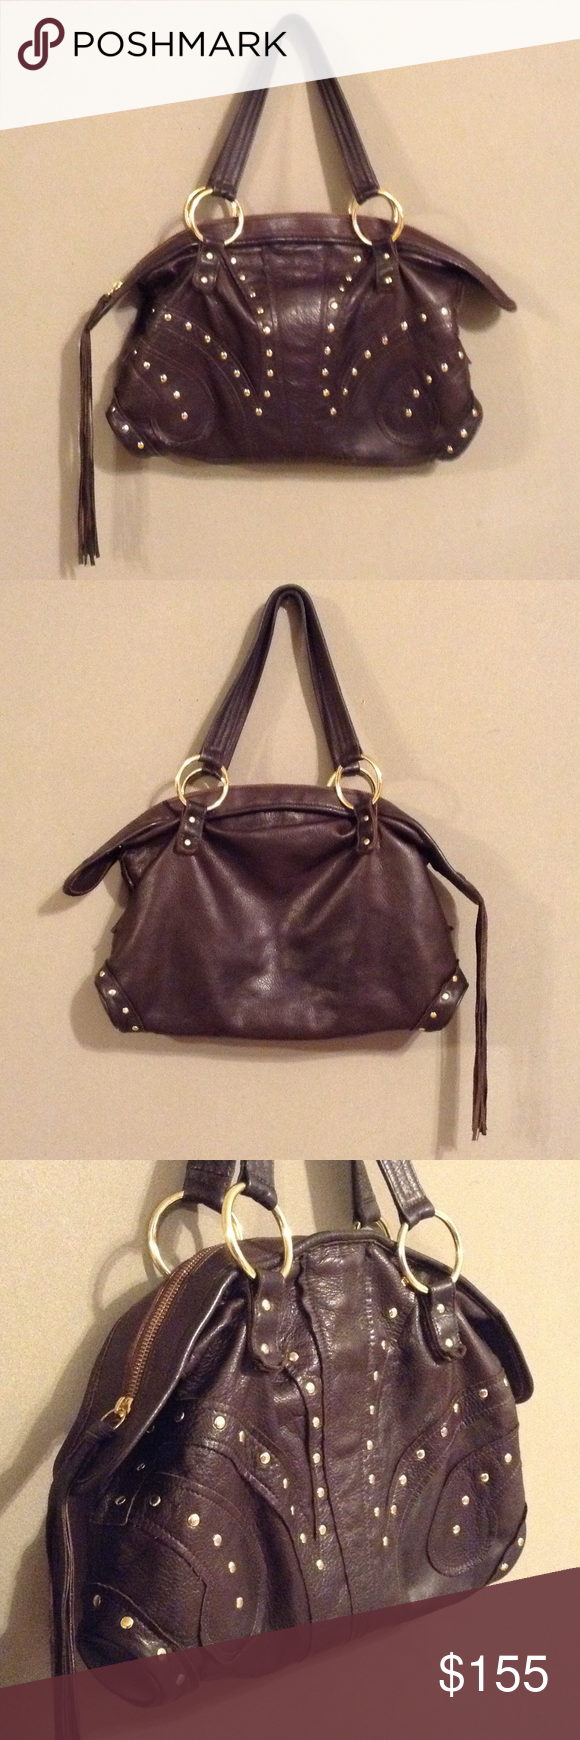 7a5223602d39 Large Chocolate BULGA Leather Bag Absolutely BEAUTIFUL bag! Fantastically  buttery leather with gold studs and